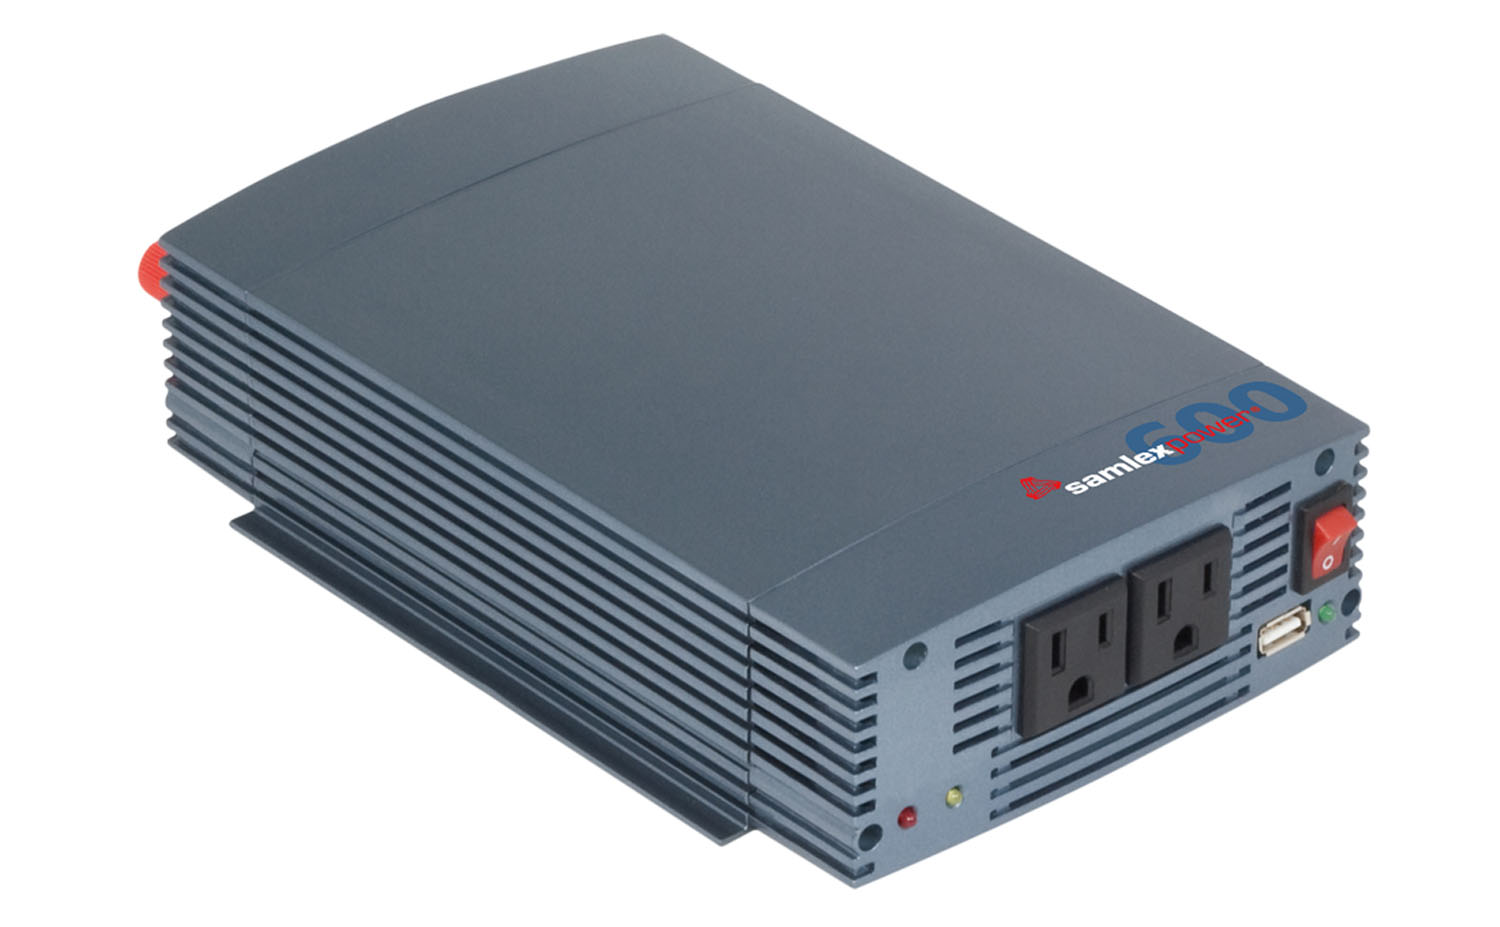 SSW60012A - SAMLEX  600 WATT PURE SINE WAVE INVERTER 12VDC TO 115VAC